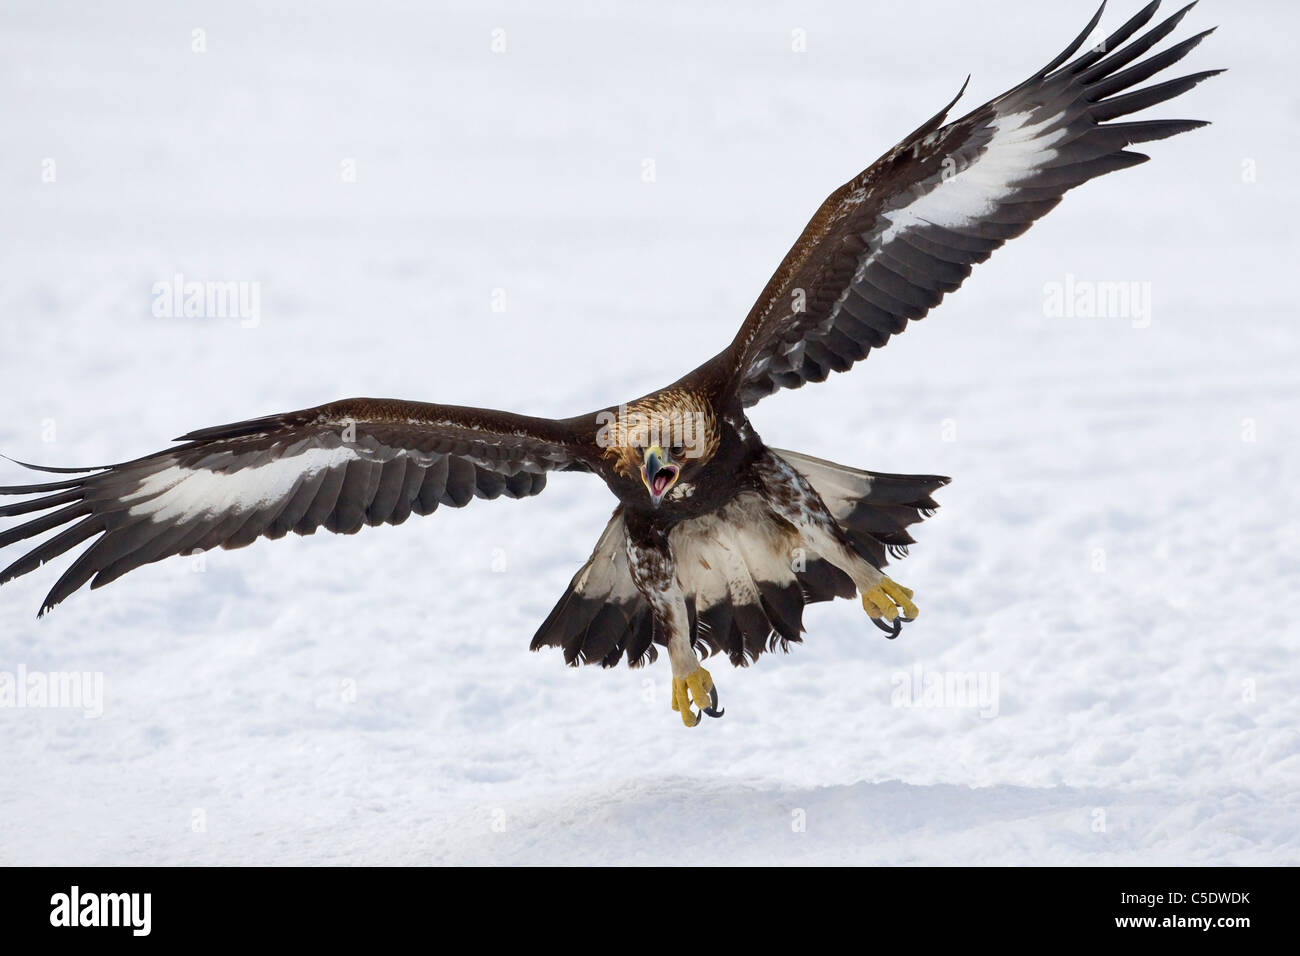 Close-up of a golden eagle with spread wings in flight over snowed  landscape -